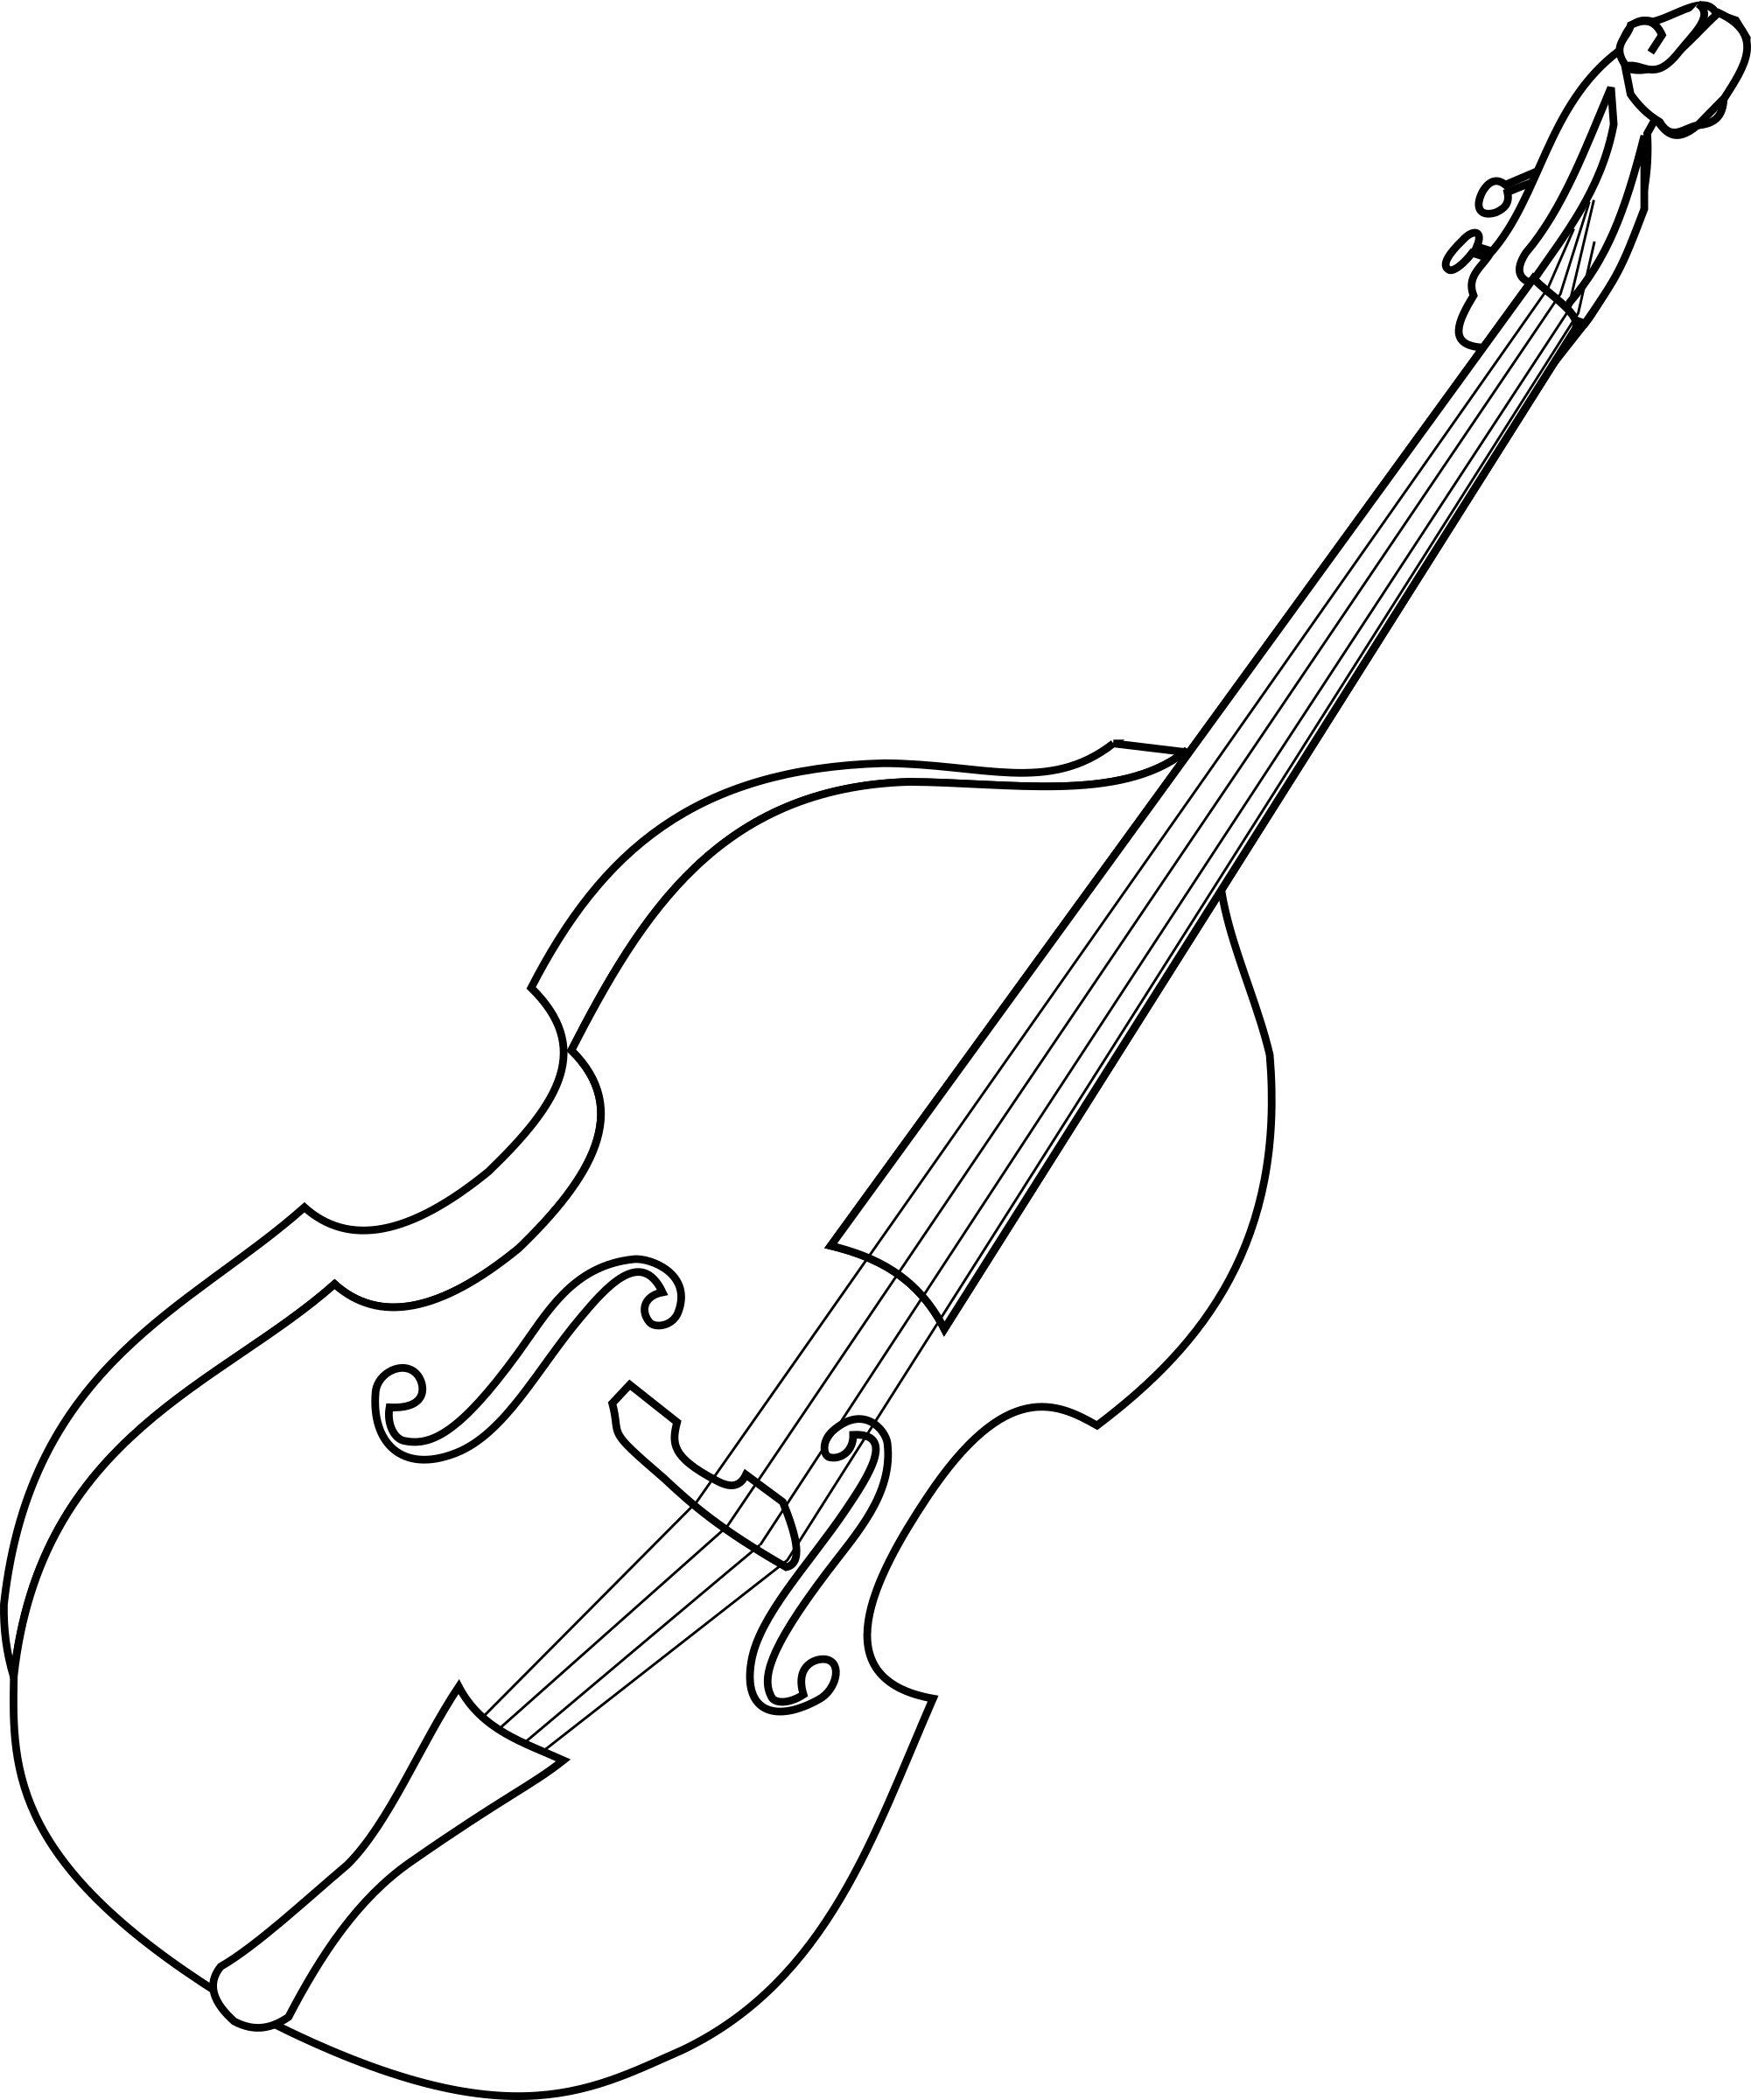 Instruments clipart double bass. Big image png